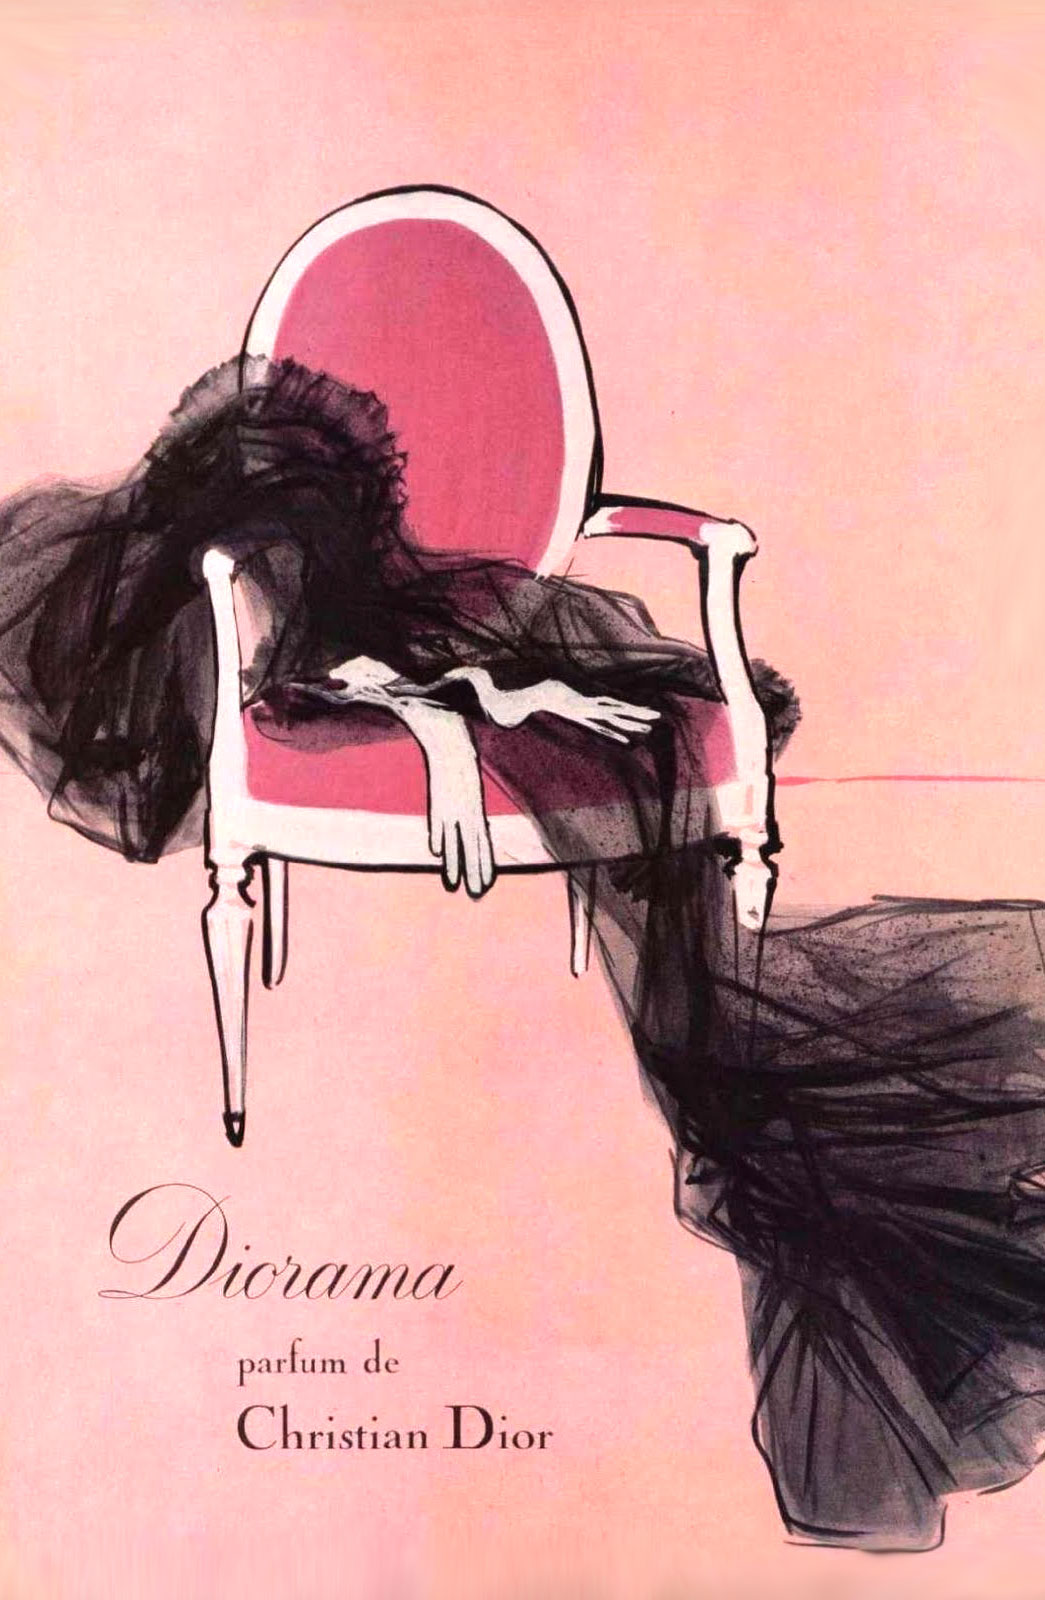 Christian Dior Diorama vintage perfume ad by Rene Gruau via fashioned by love